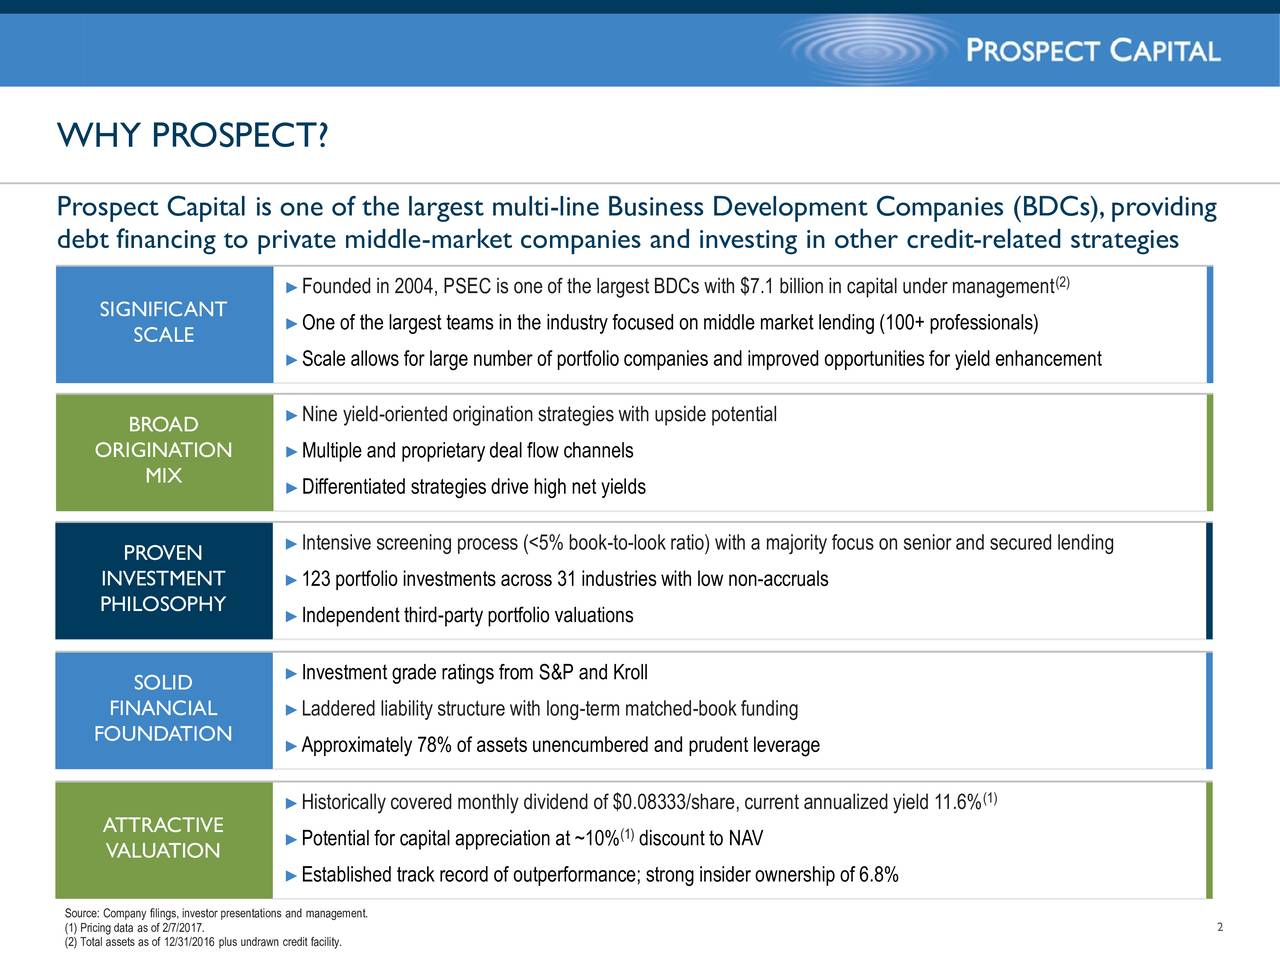 Prospect Capital is one of the largest multi-line Business Development Companies (BDCs),providing debt financing to private middle-market companies and investing in other credit-related strategies Founded in 2004, PSEC is one of the largest BDCs with $7.1 billion in capital under management SIGNIFICANT One of the largest teams in the industry focused on middle market lending (100+ professionals) SCALE Scale allows for large number of portfolio companies and improved opportunities for yield enhancement BROAD  Nine yield-oriented origination strategies with upside potential ORIGINATION  Multiple and proprietary deal flow channels MIX Differentiated strategies drive high net yields PROVEN  Intensive screening process (<5% book-to-look ratio) with a majority focus on senior and secured lending INVESTMENT 123 portfolio investments across 31 industries with low non-accruals PHILOSOPHY  Independent third-party portfolio valuations Investment grade ratings from S&P and Kroll SOLID FINANCIAL  Laddered liabilitystructure with long-term matched-book funding FOUNDATION  Approximately 78% of assets unencumbered and prudent leverage Historically covered monthly dividend of $0.08333/share, current annualized yield 11.6% ATTRACTIVE Potential for capital appreciation at ~10% discount to NAV VALUATION Established track record of outperformance; strong insider ownership of 6.8% Source: Company filings, investor presentations and management. 2 (2) Total assets as of 12/31/2016 plus undrawn credit facility.